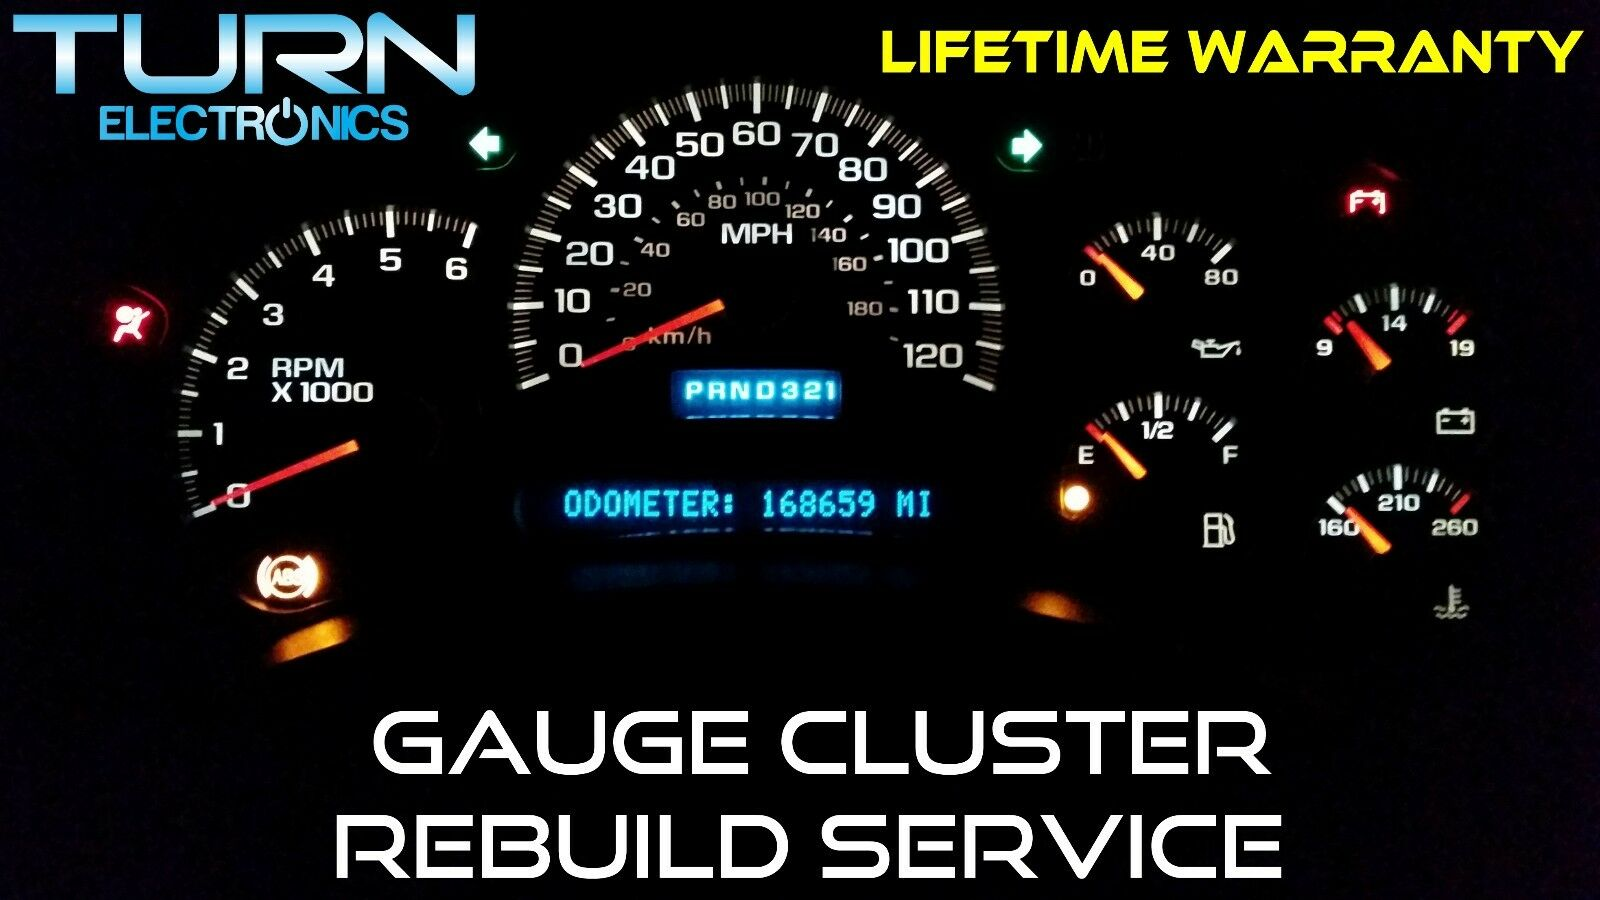 Used 1995 Chevrolet Tahoe Instrument Clusters for Sale